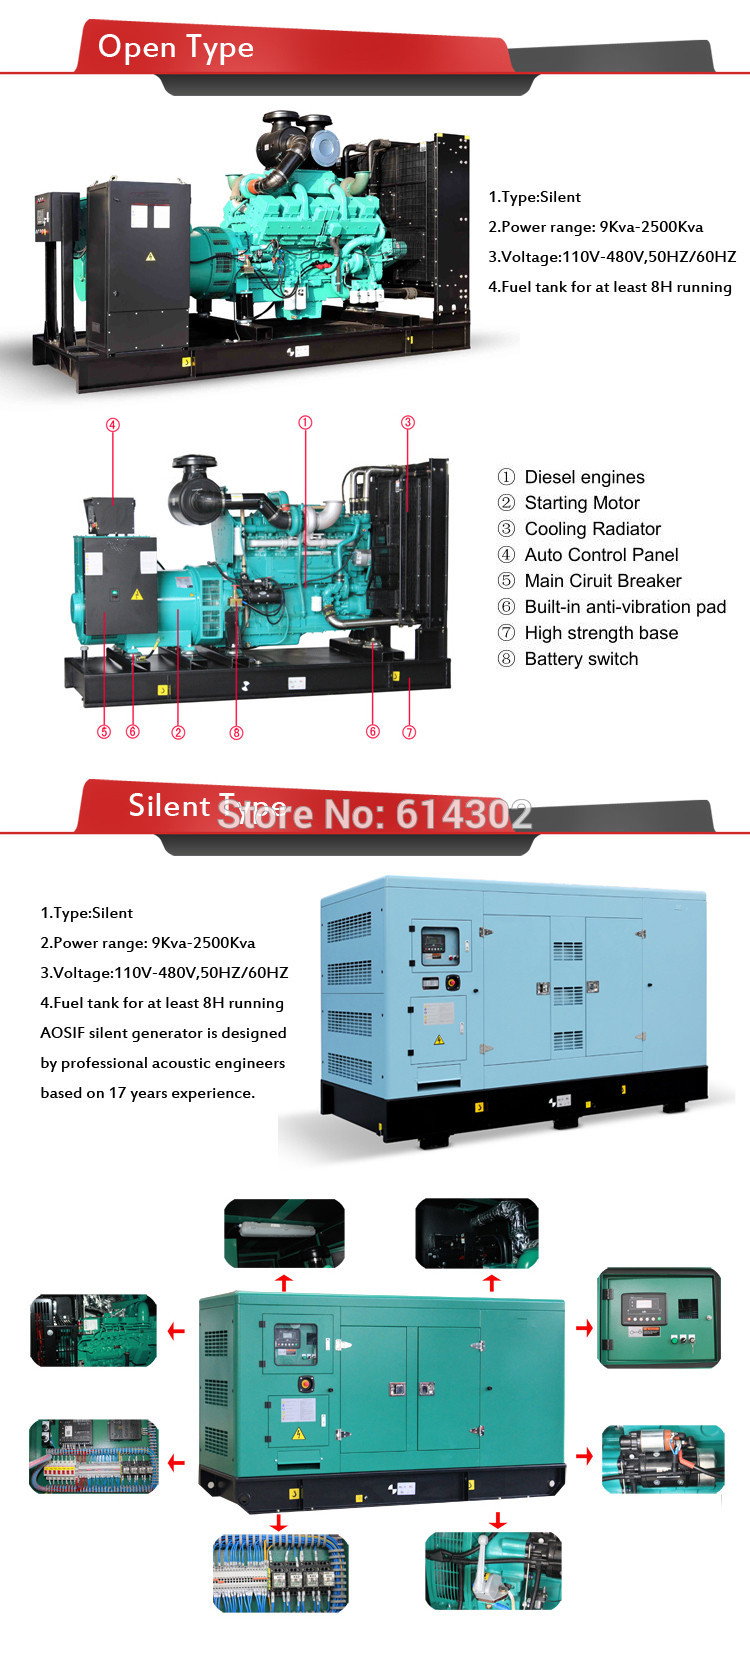 open and silent genset infor